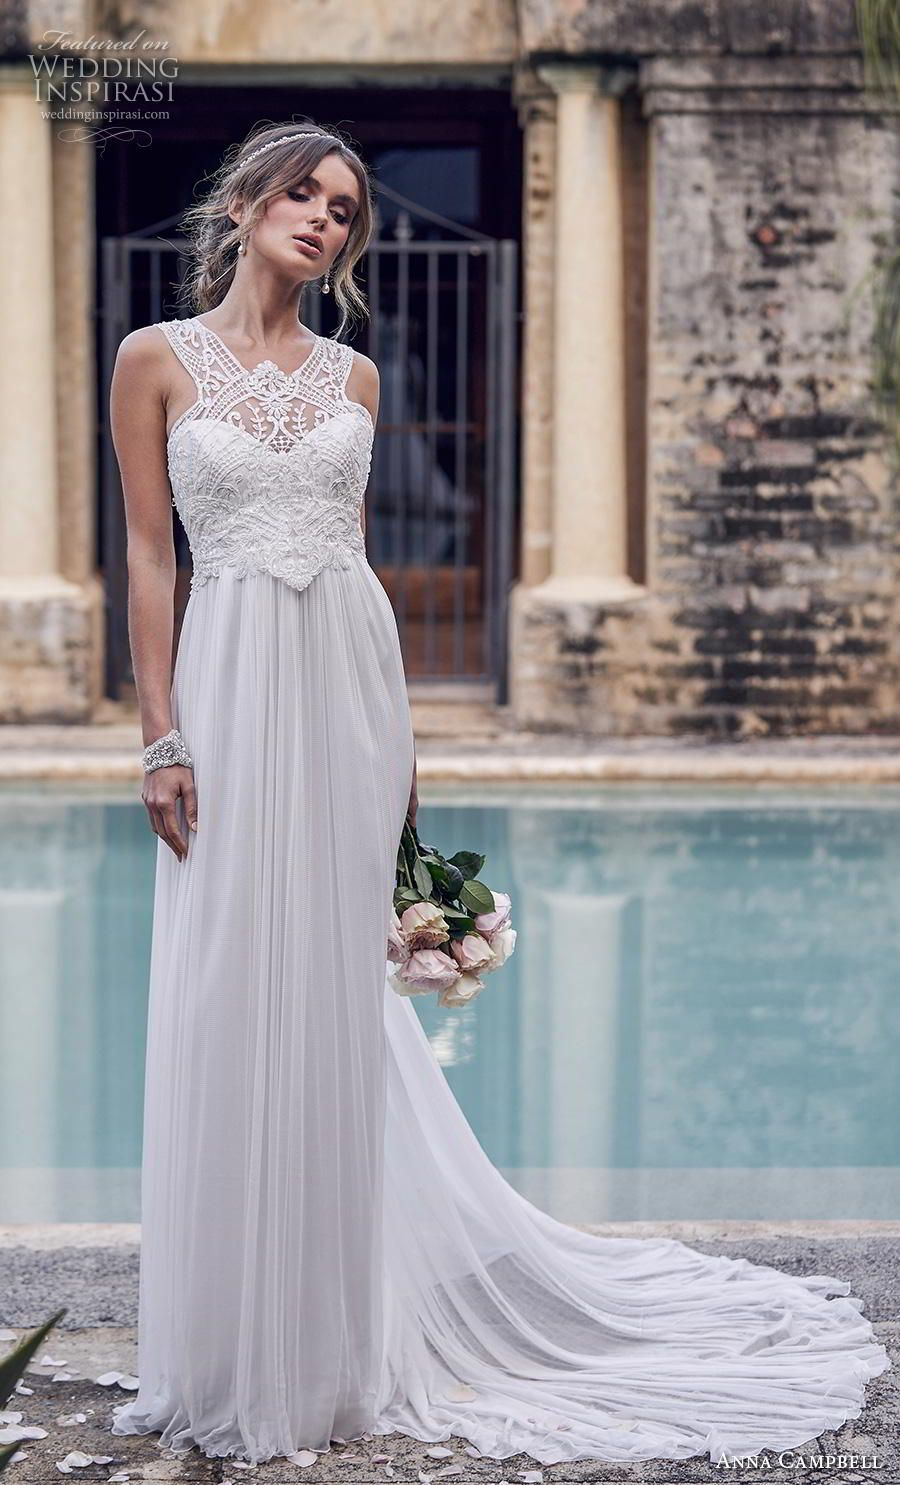 Anna campbell bridal sleeveless halter neck heavily embellished